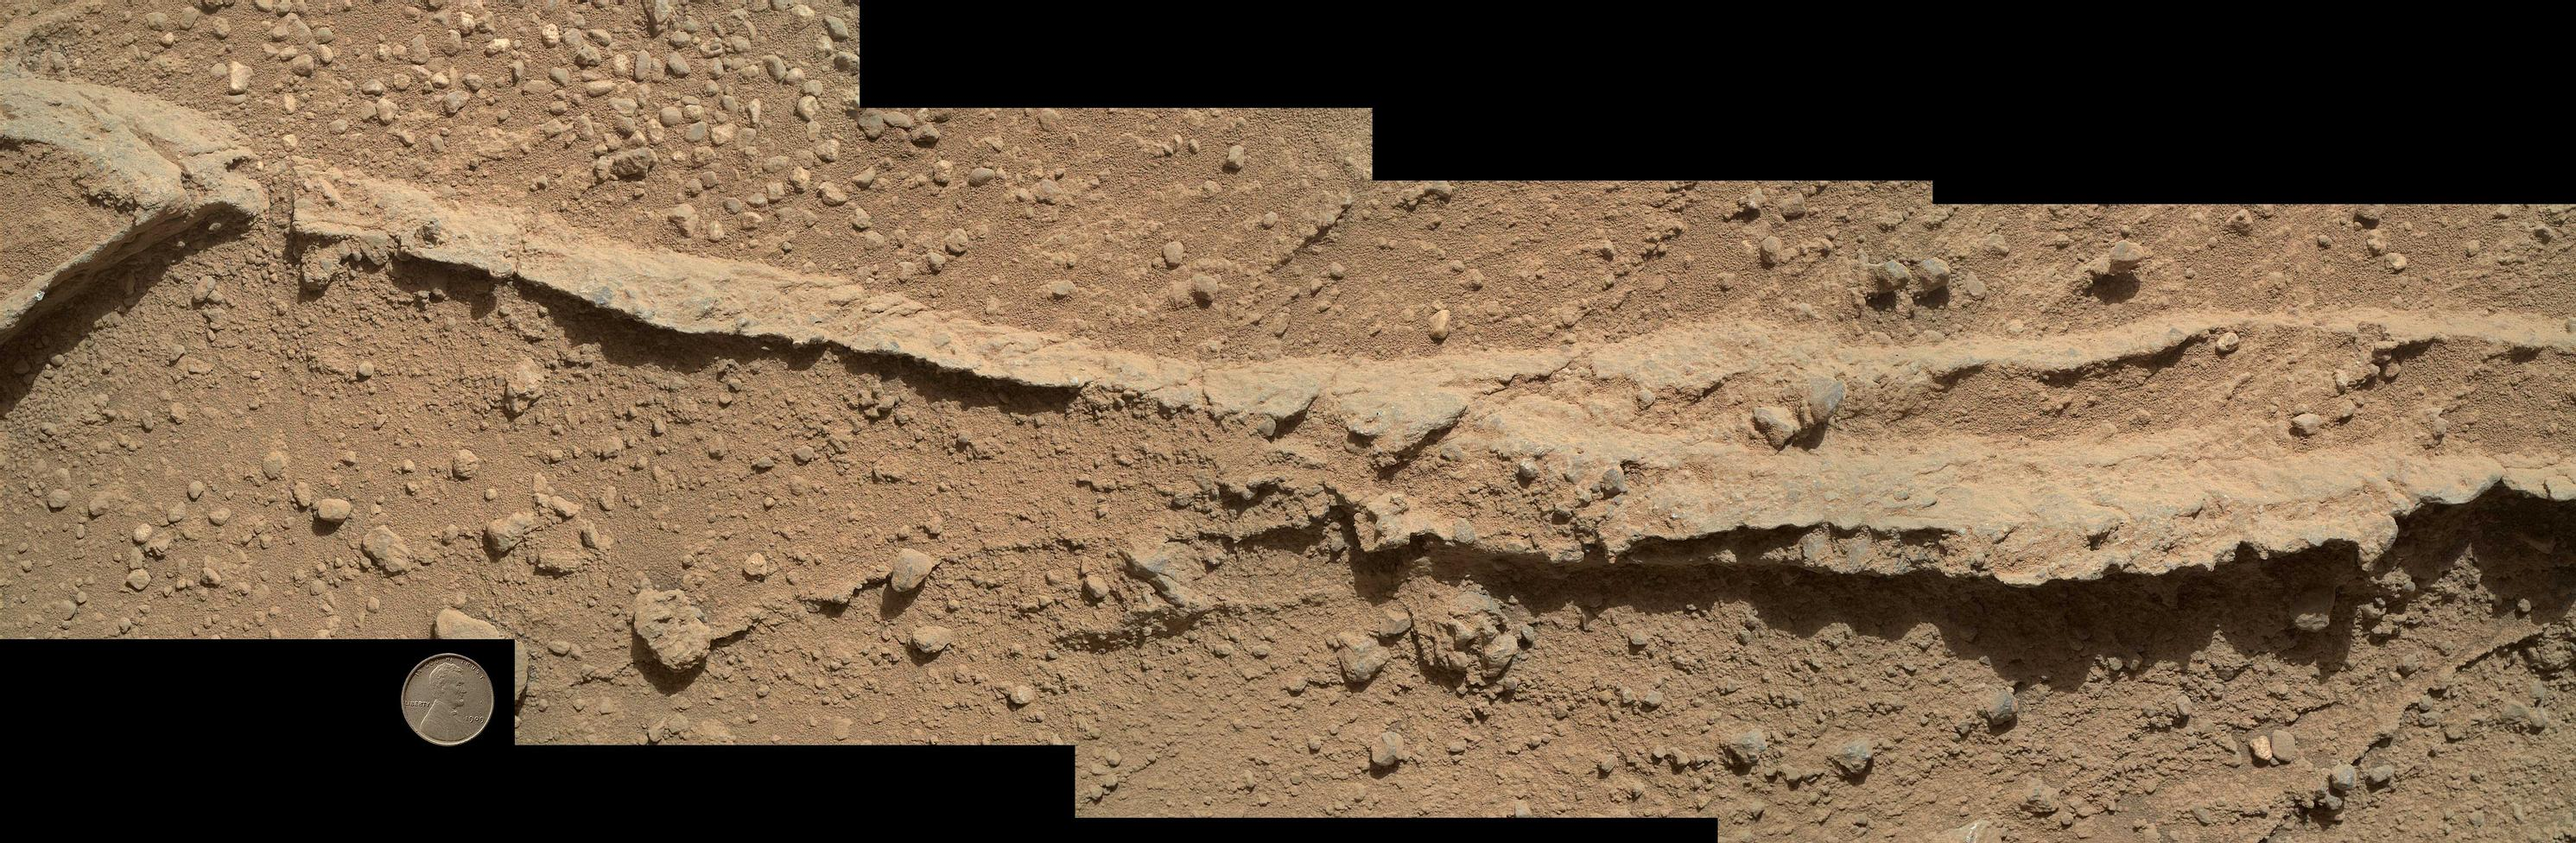 Close-up of Ridge in Rock Outcrop at Curiosity's Waypoint 1